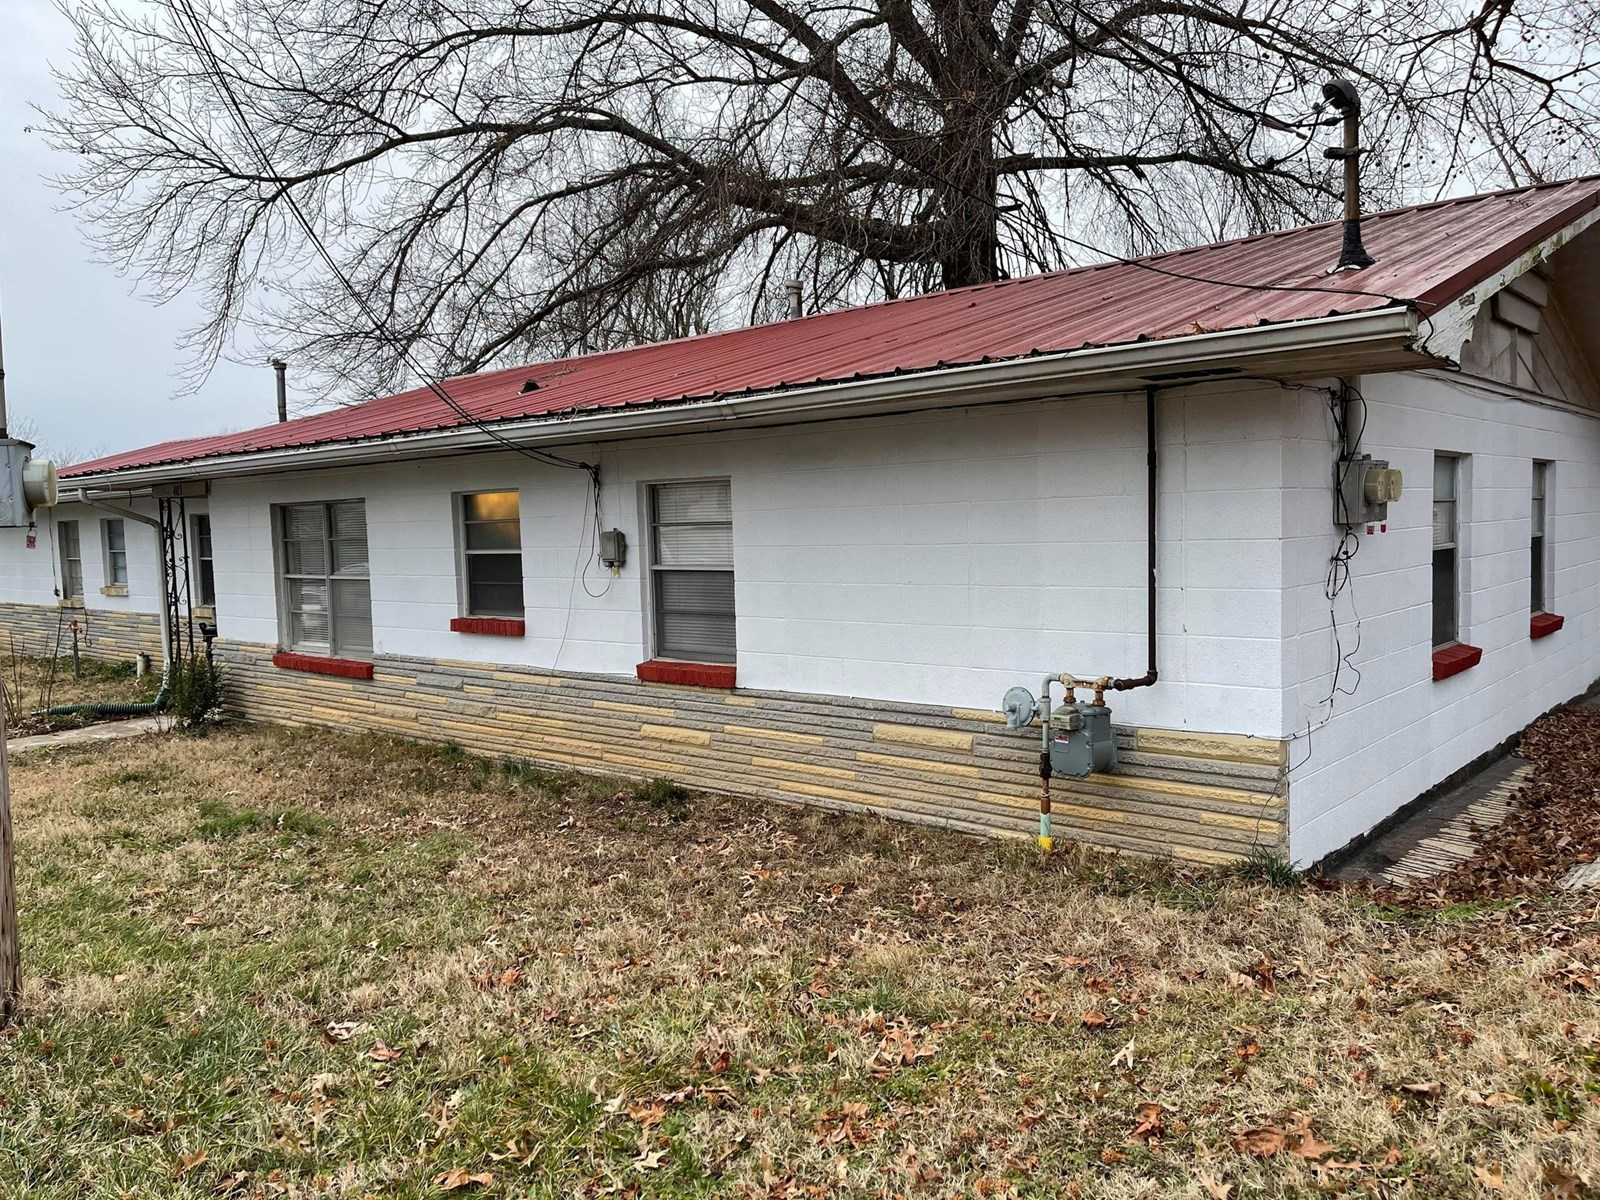 Investment property for sale in Ava Mo